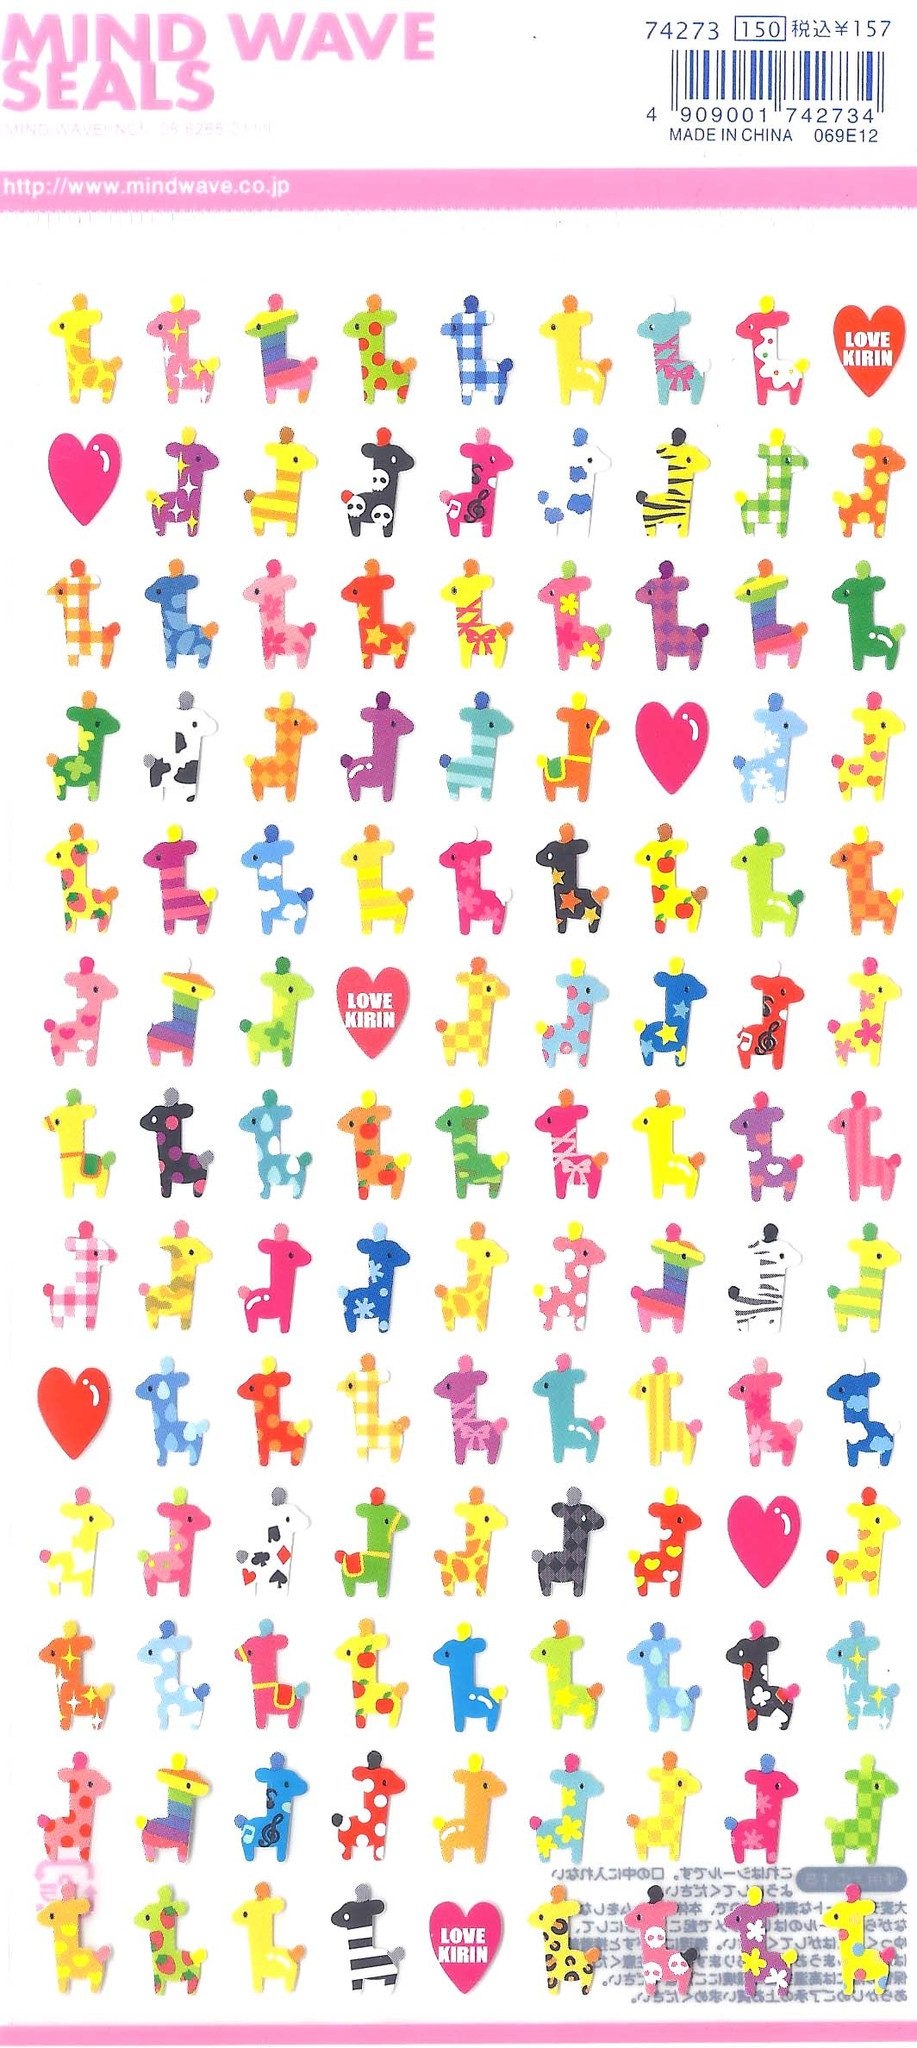 colorful-giraffe-shaped-animal-themed-stickers-for-scrapbooking-and-decorating